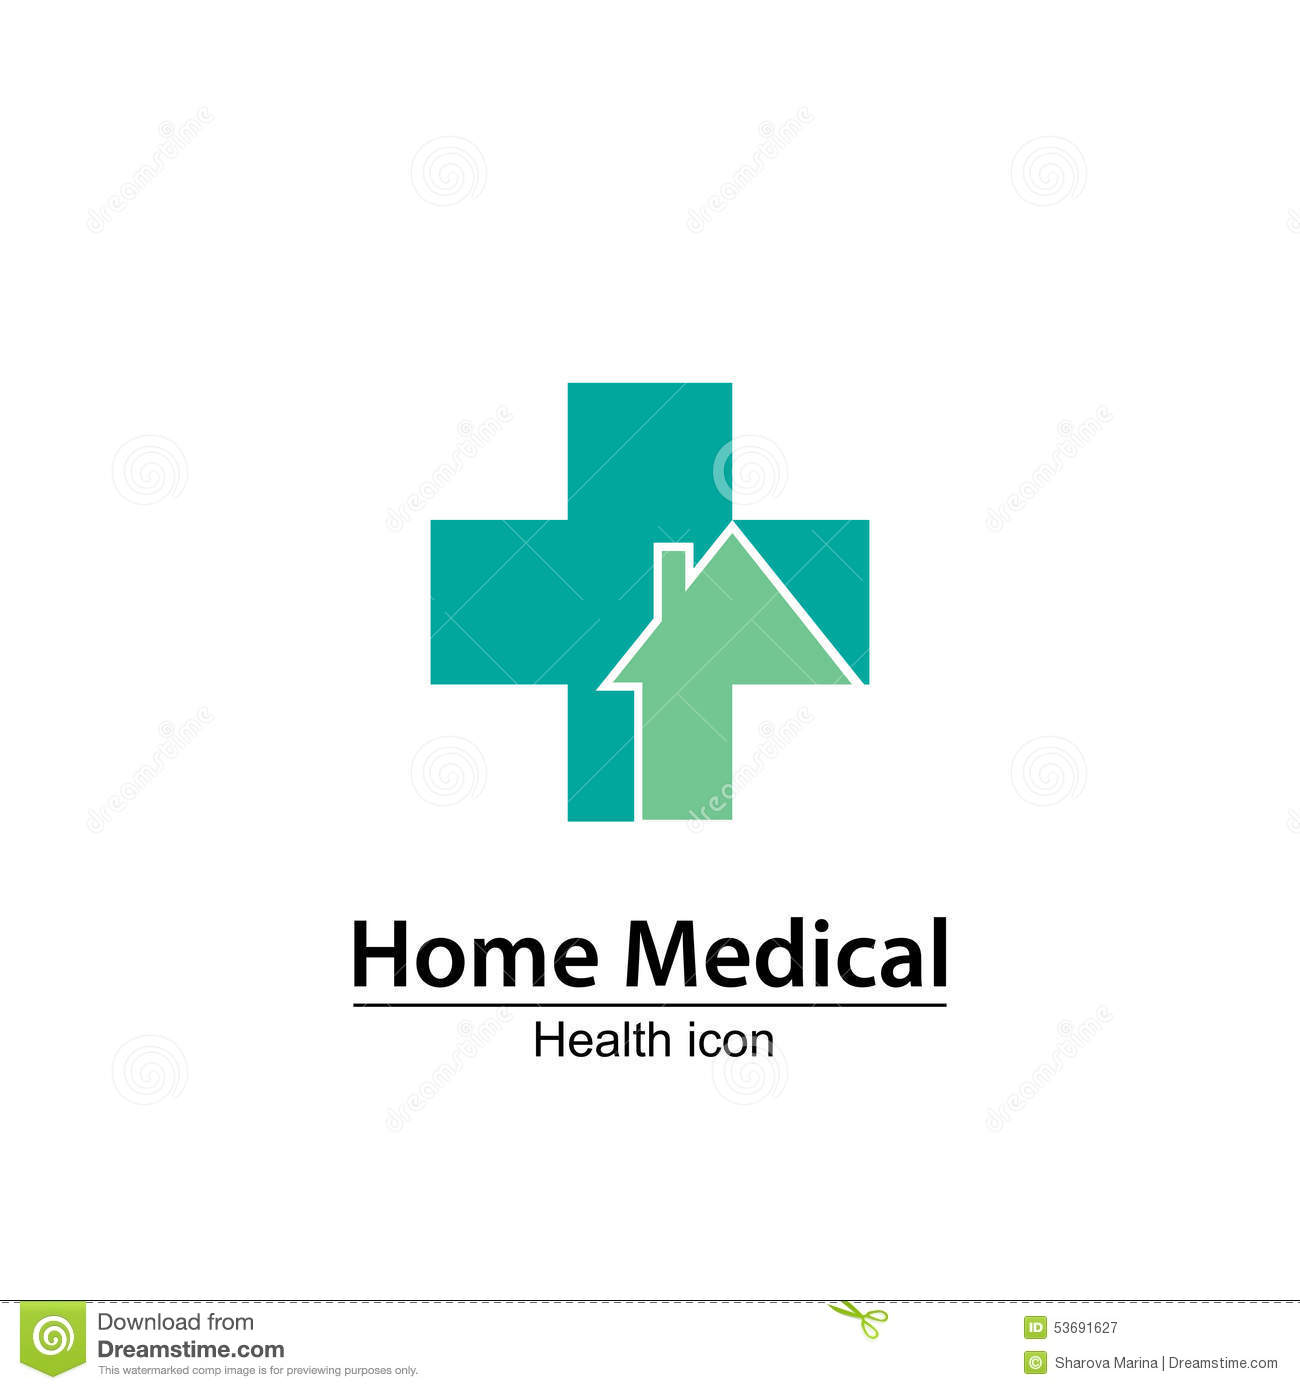 home-medical-symbol-nursing-home-logo-clinic-who-care-patients-health-icon-53691627.jpg